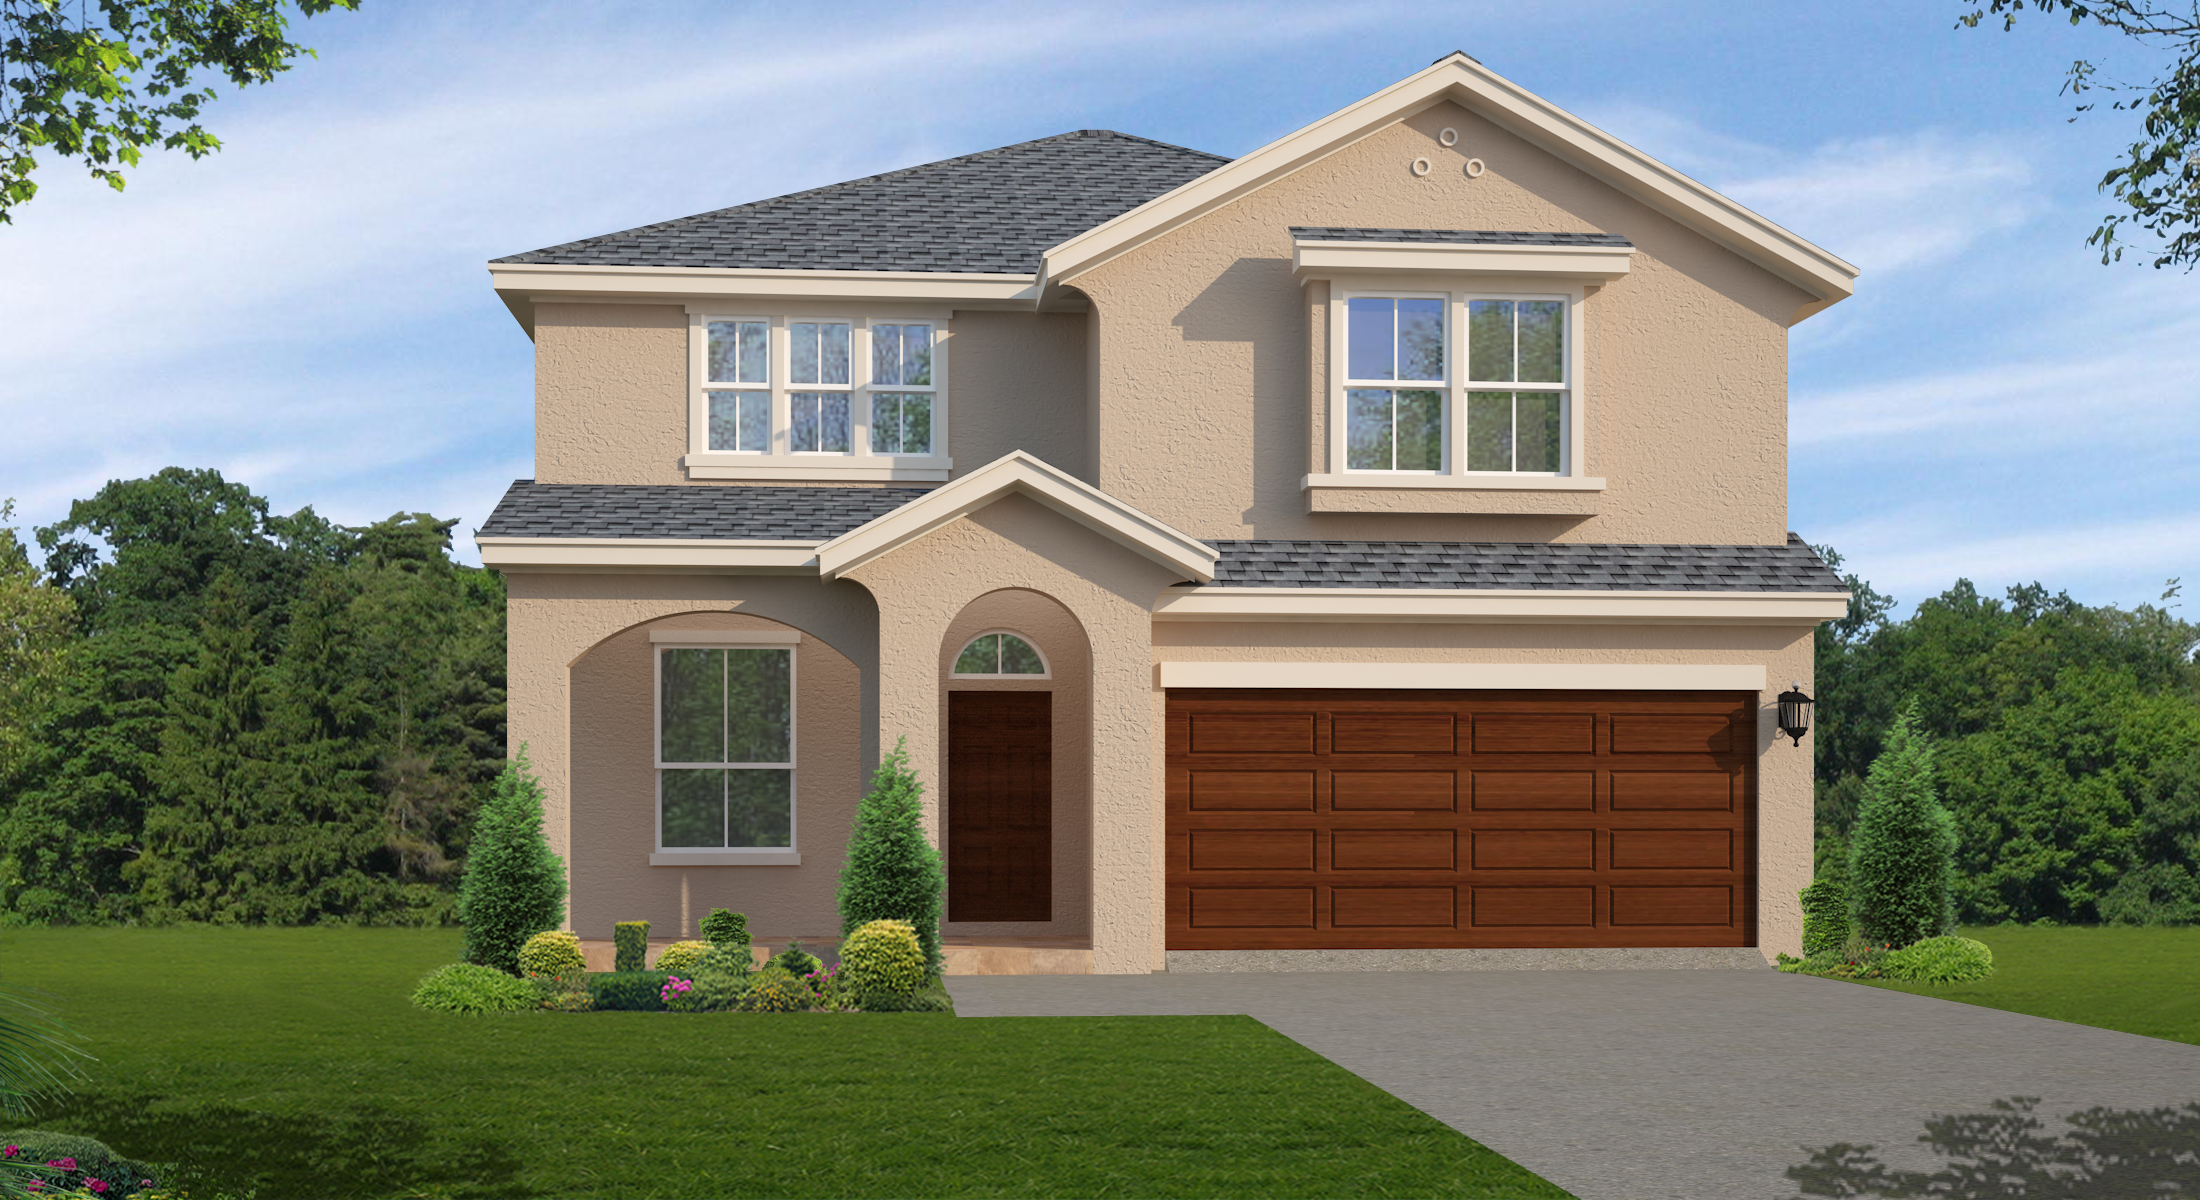 The Sorrento | Elevation C | $323,990